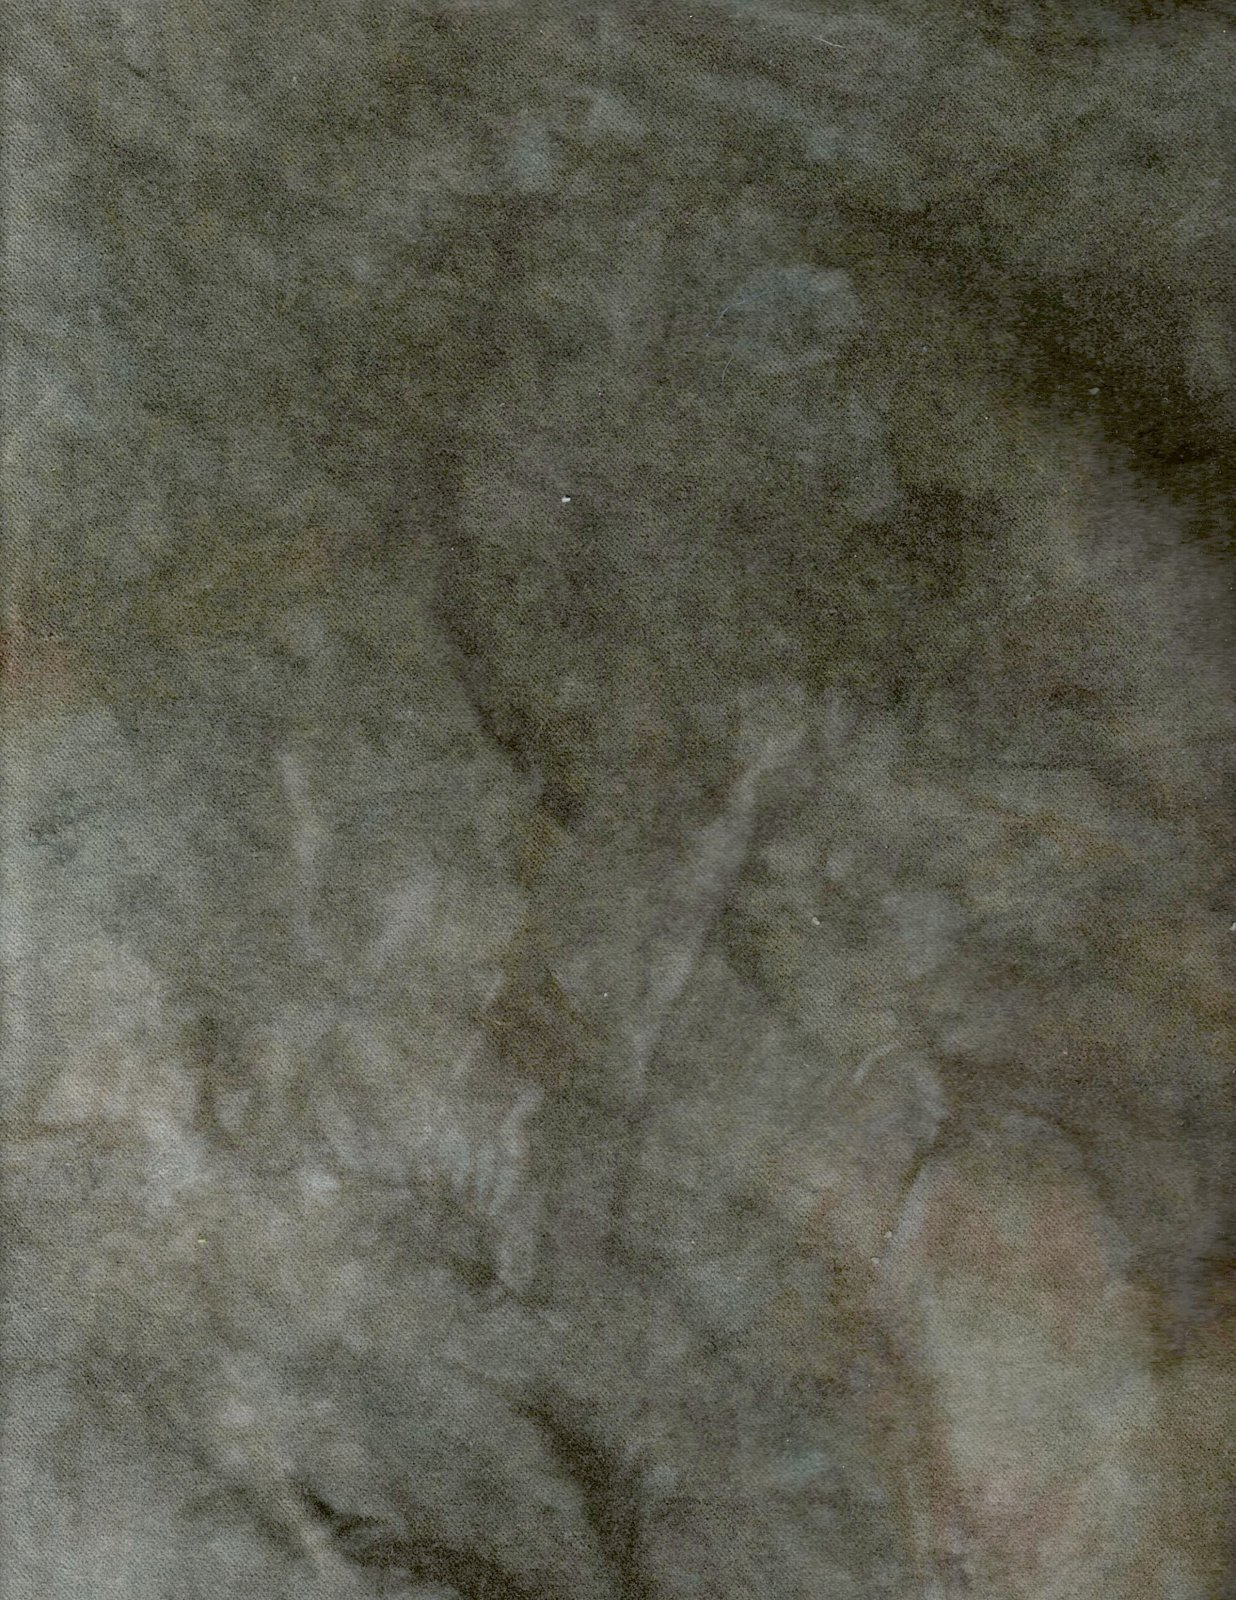 Evergreen Hand-Dyed Cotton Velveteen 9in x 10in